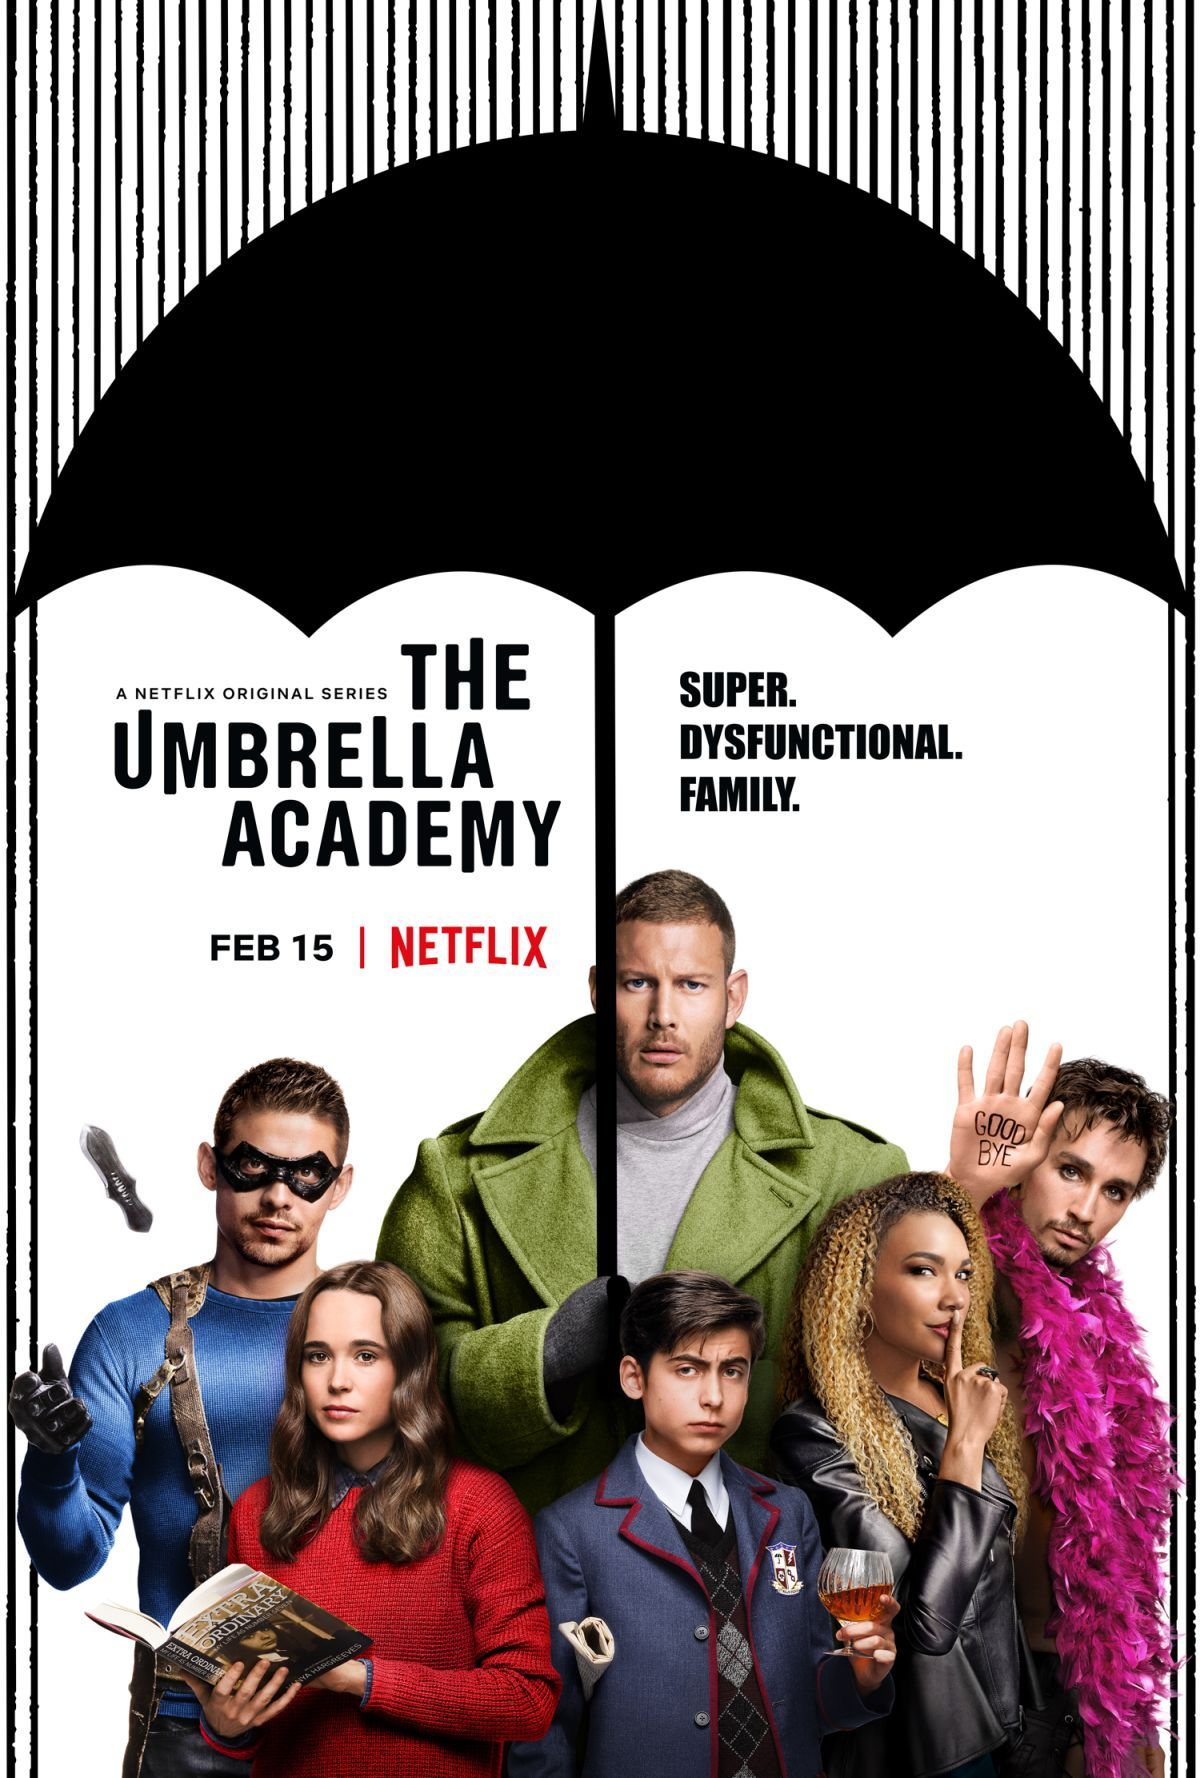 The Umbrella Academy S01 E02 Cut